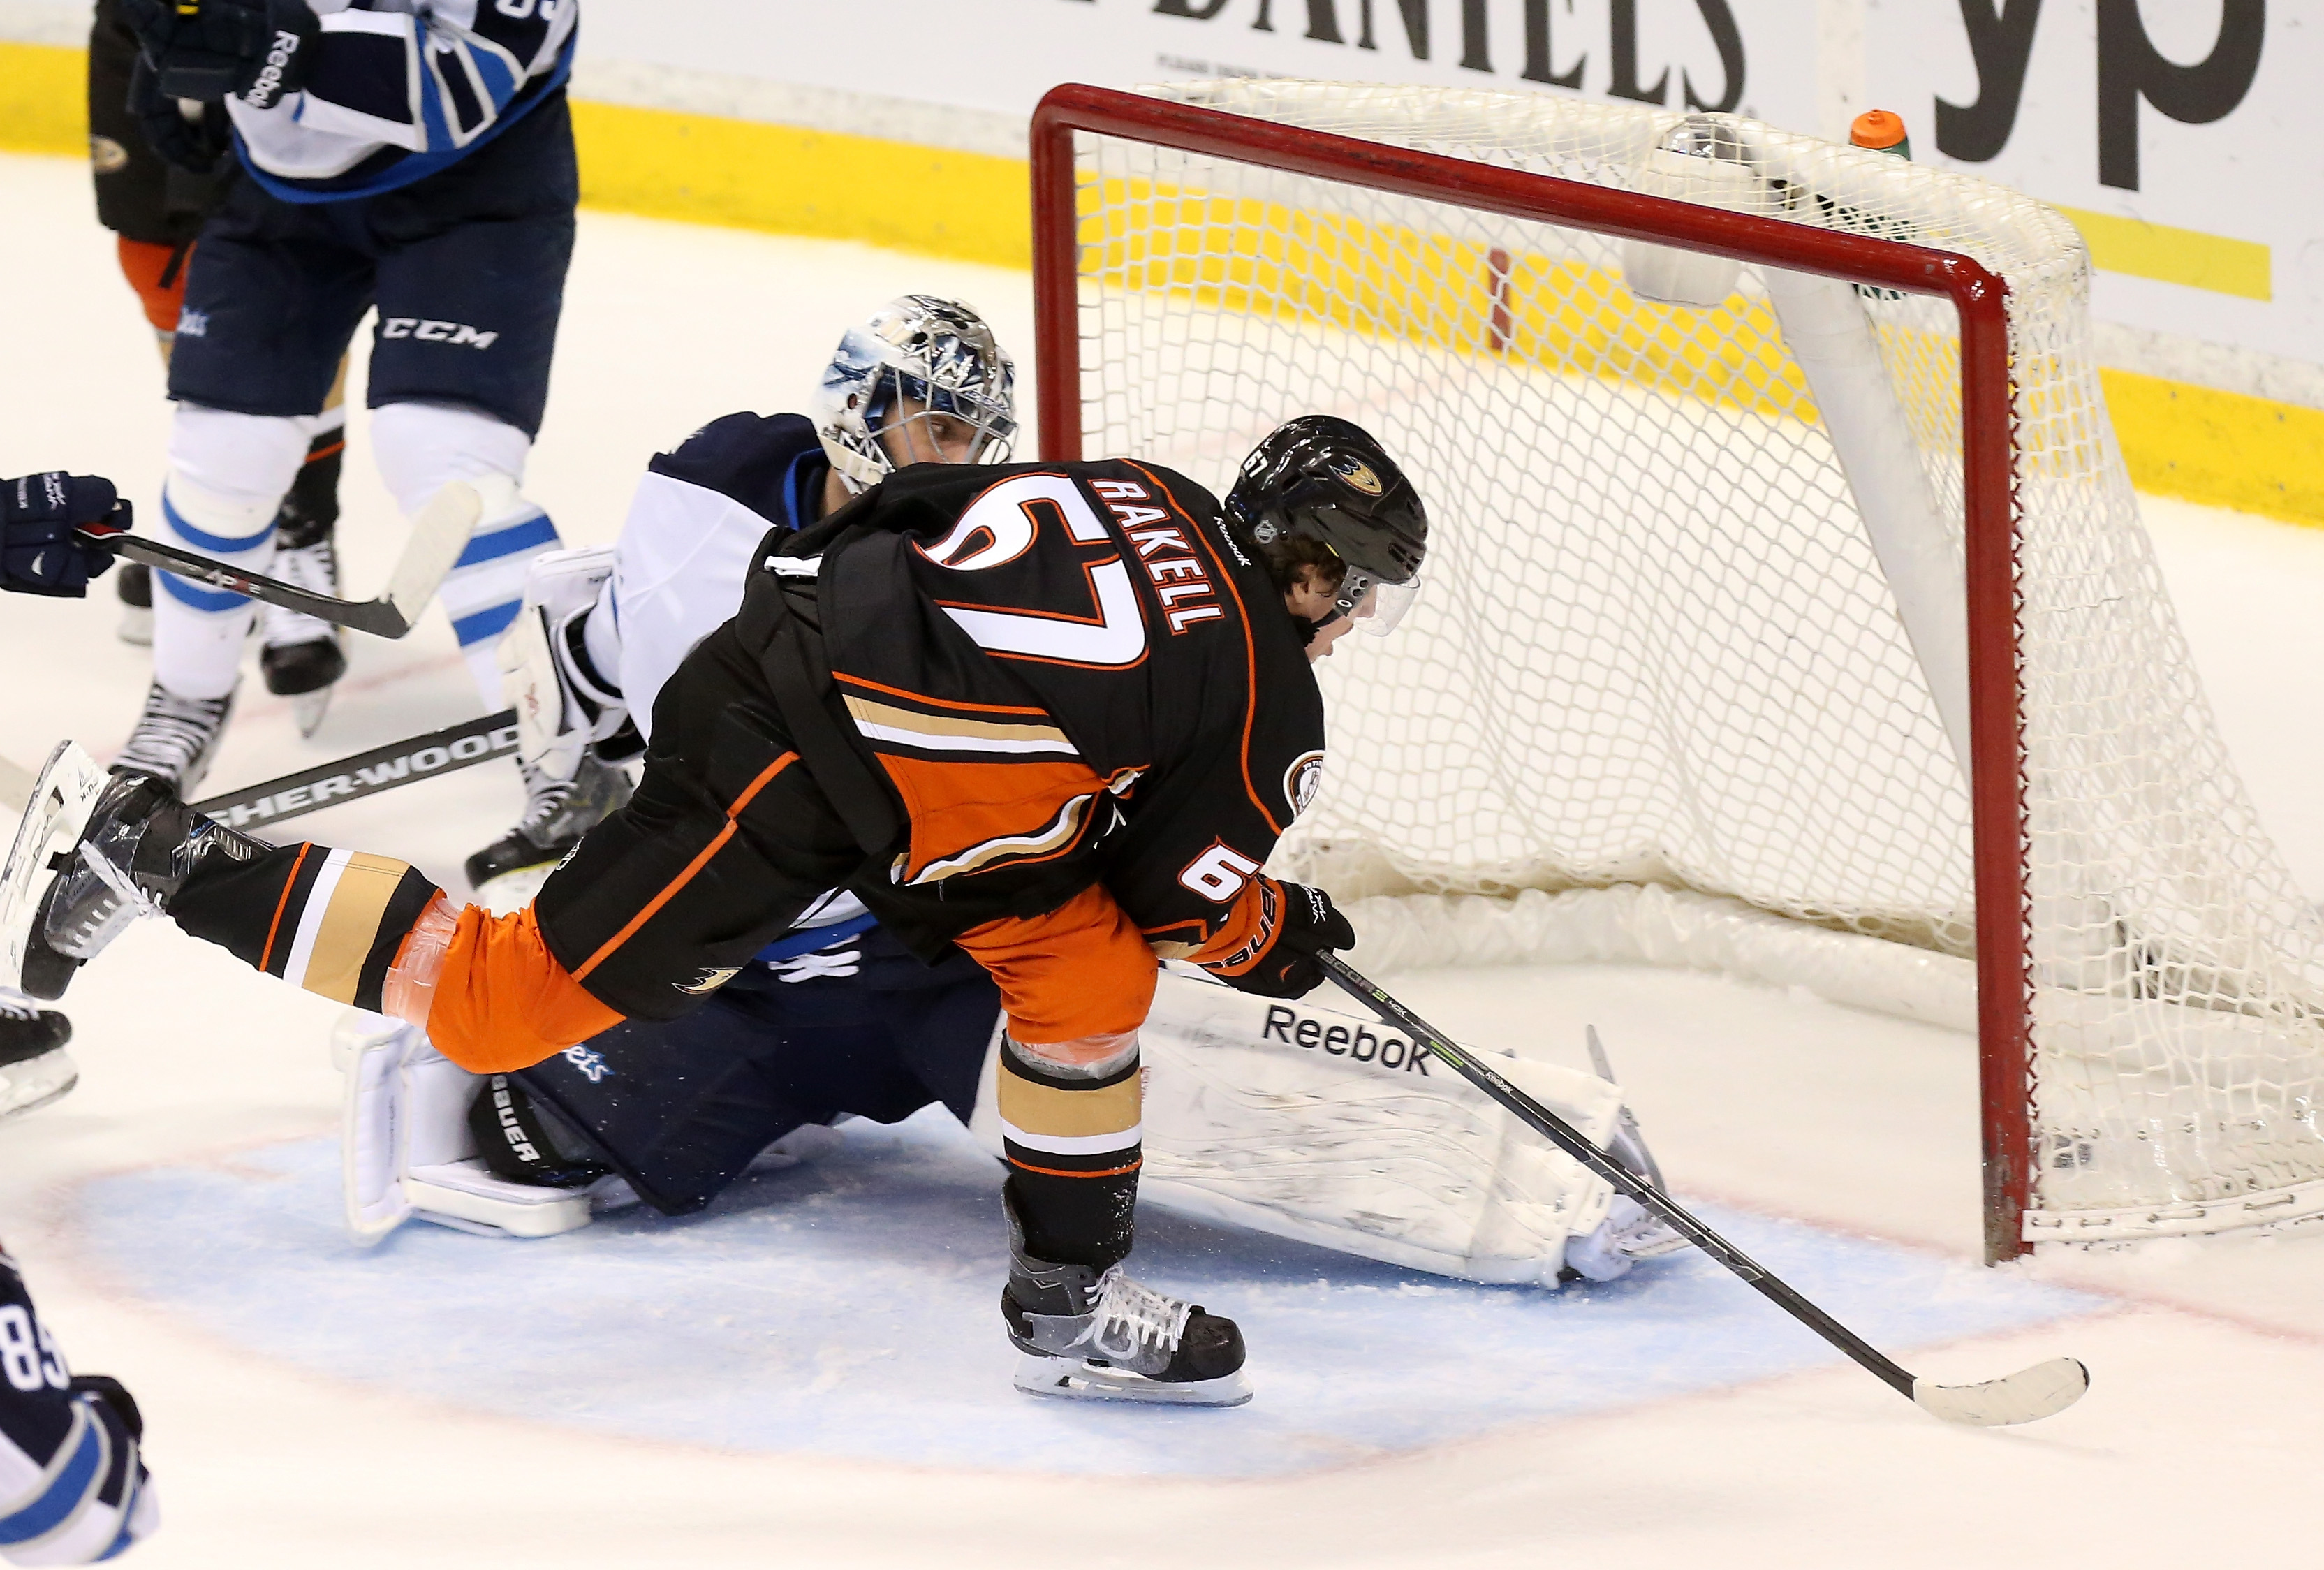 Rickard Rakell scores the game-tying goal during the third period.